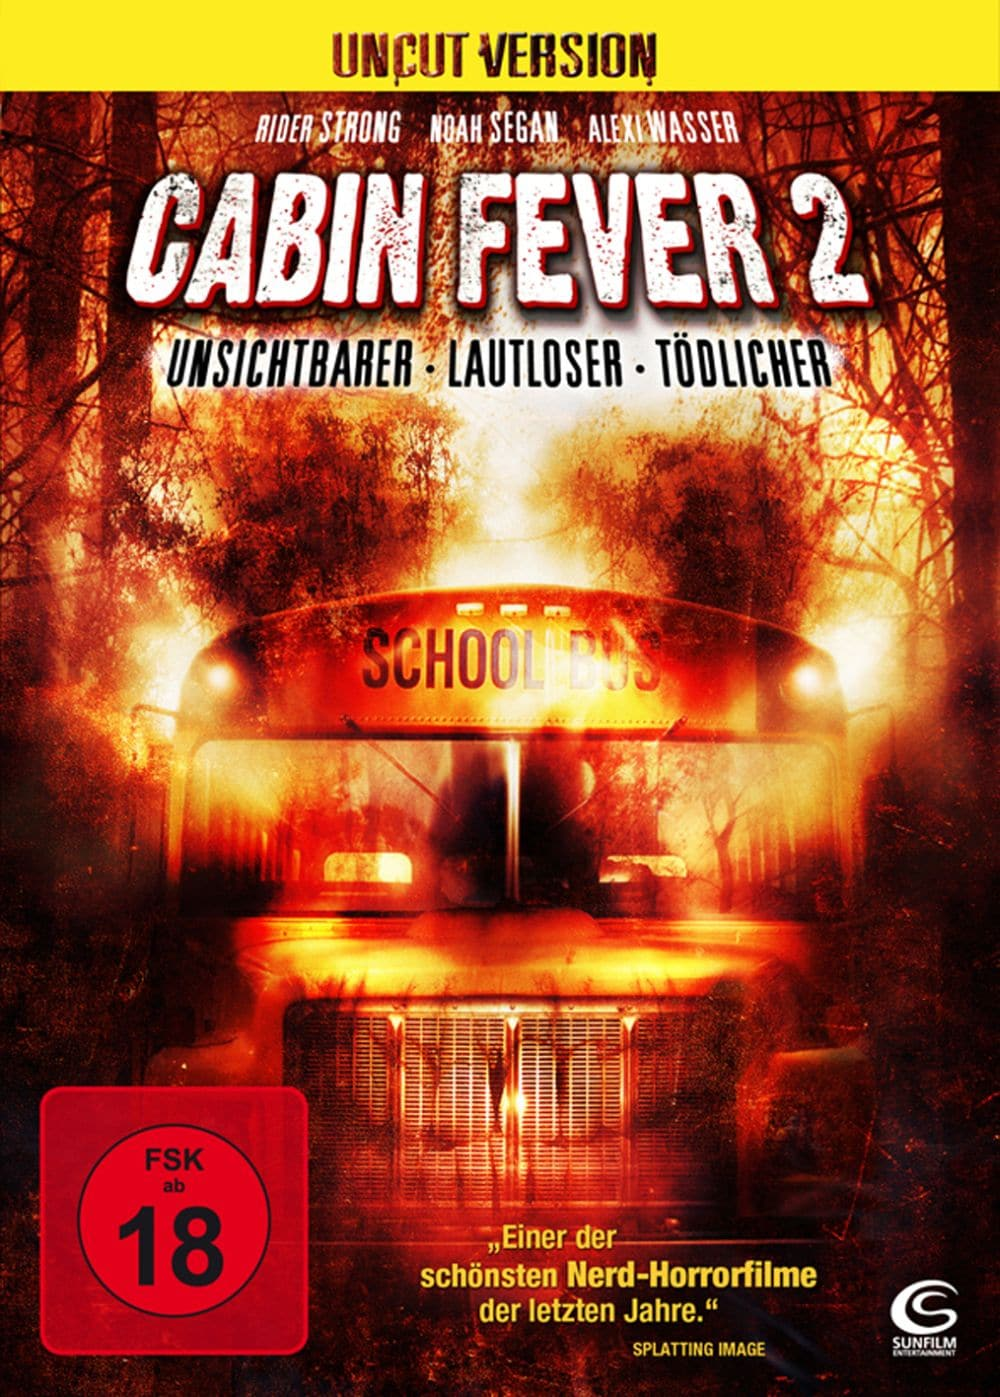 cabin fever images - photo #48